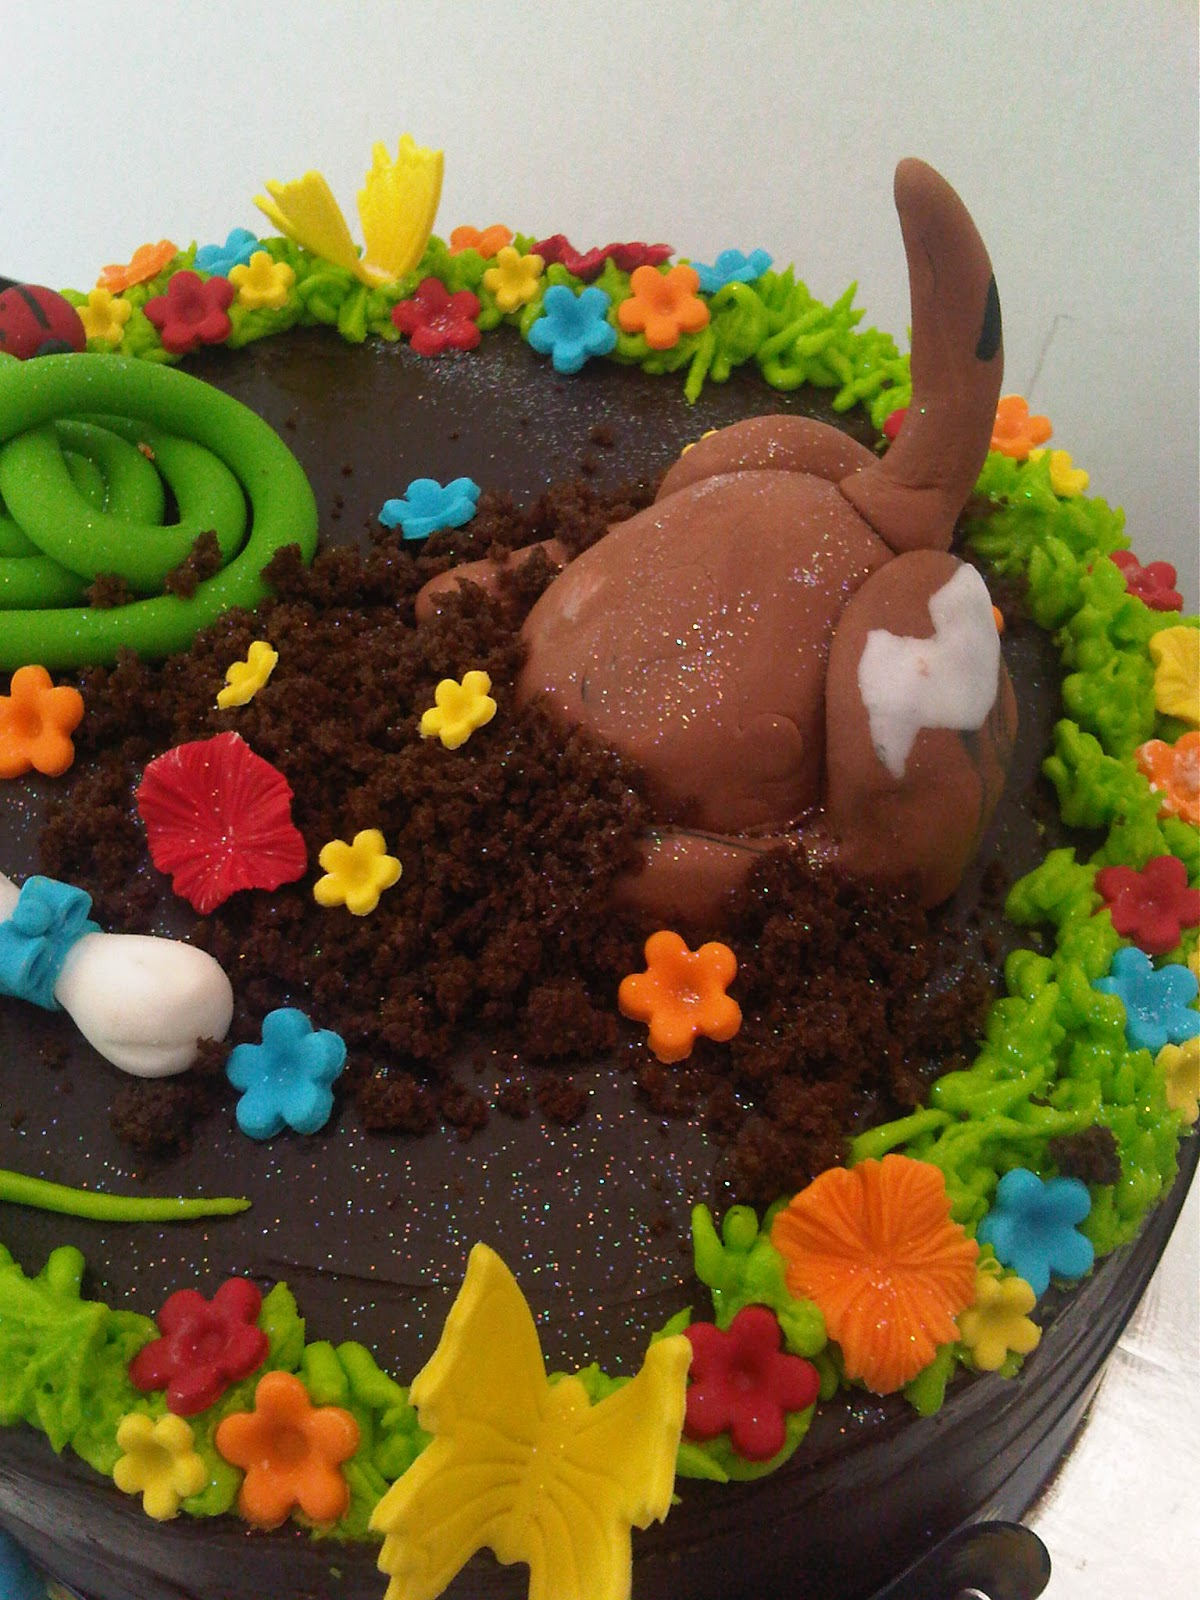 Digging Dog Cake Decoration : Welcome to Just Iced: Dog digging cake!